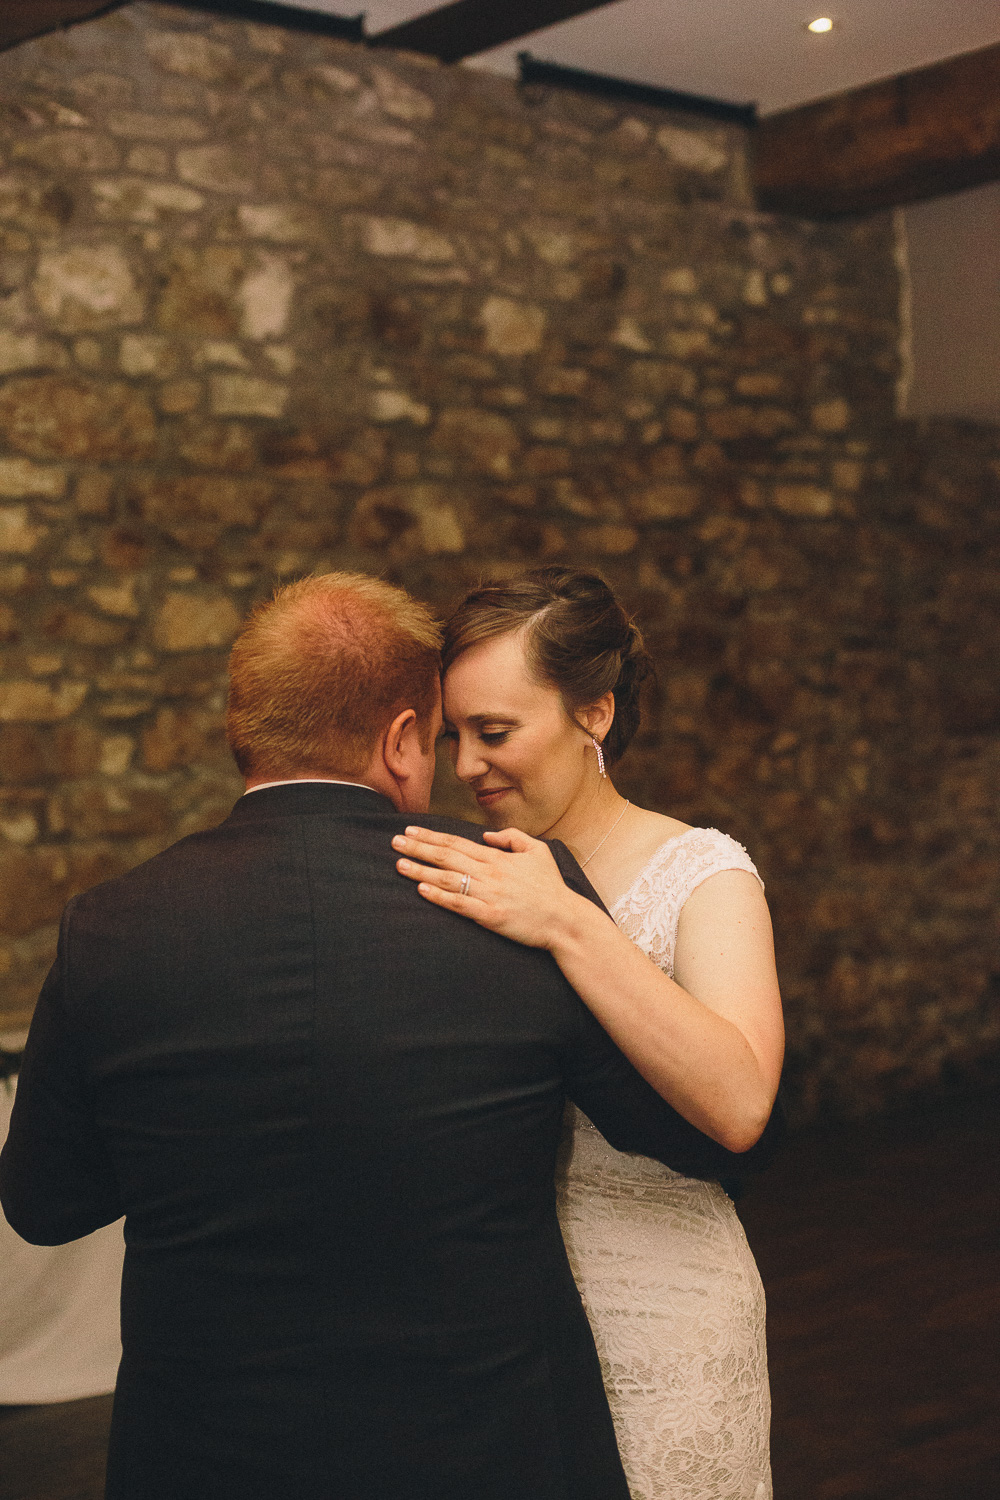 Bride with short hair shares the first dance with her groom during their summer wedding at Cambridge Mill